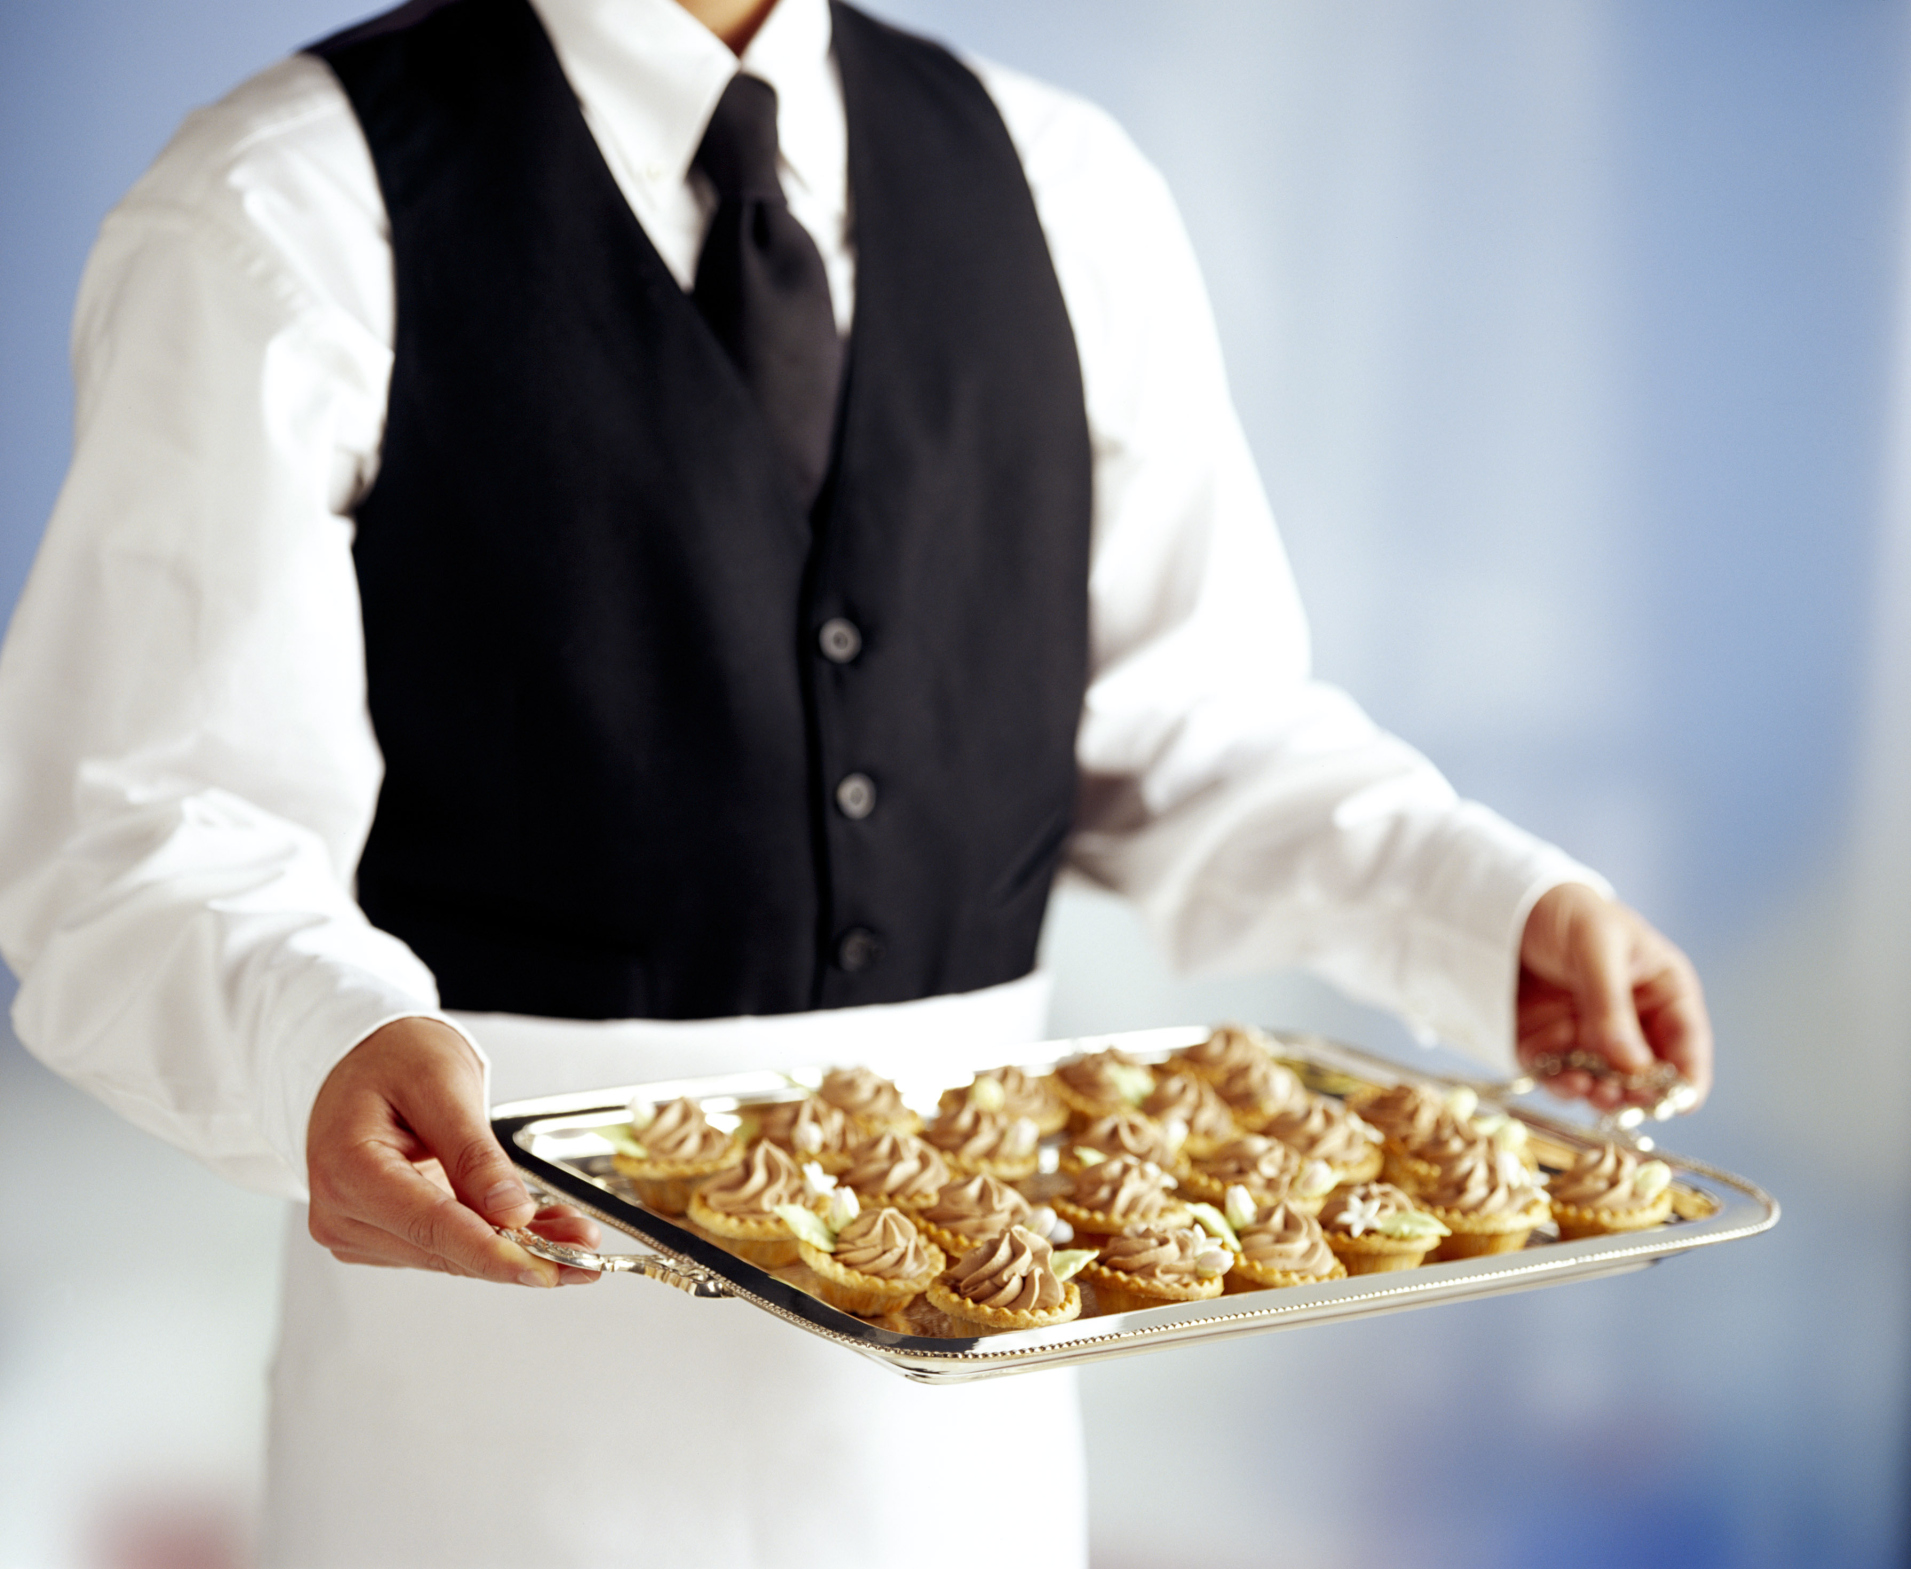 How to Calculate Cost & Quantities of Catering Food | Bizfluent